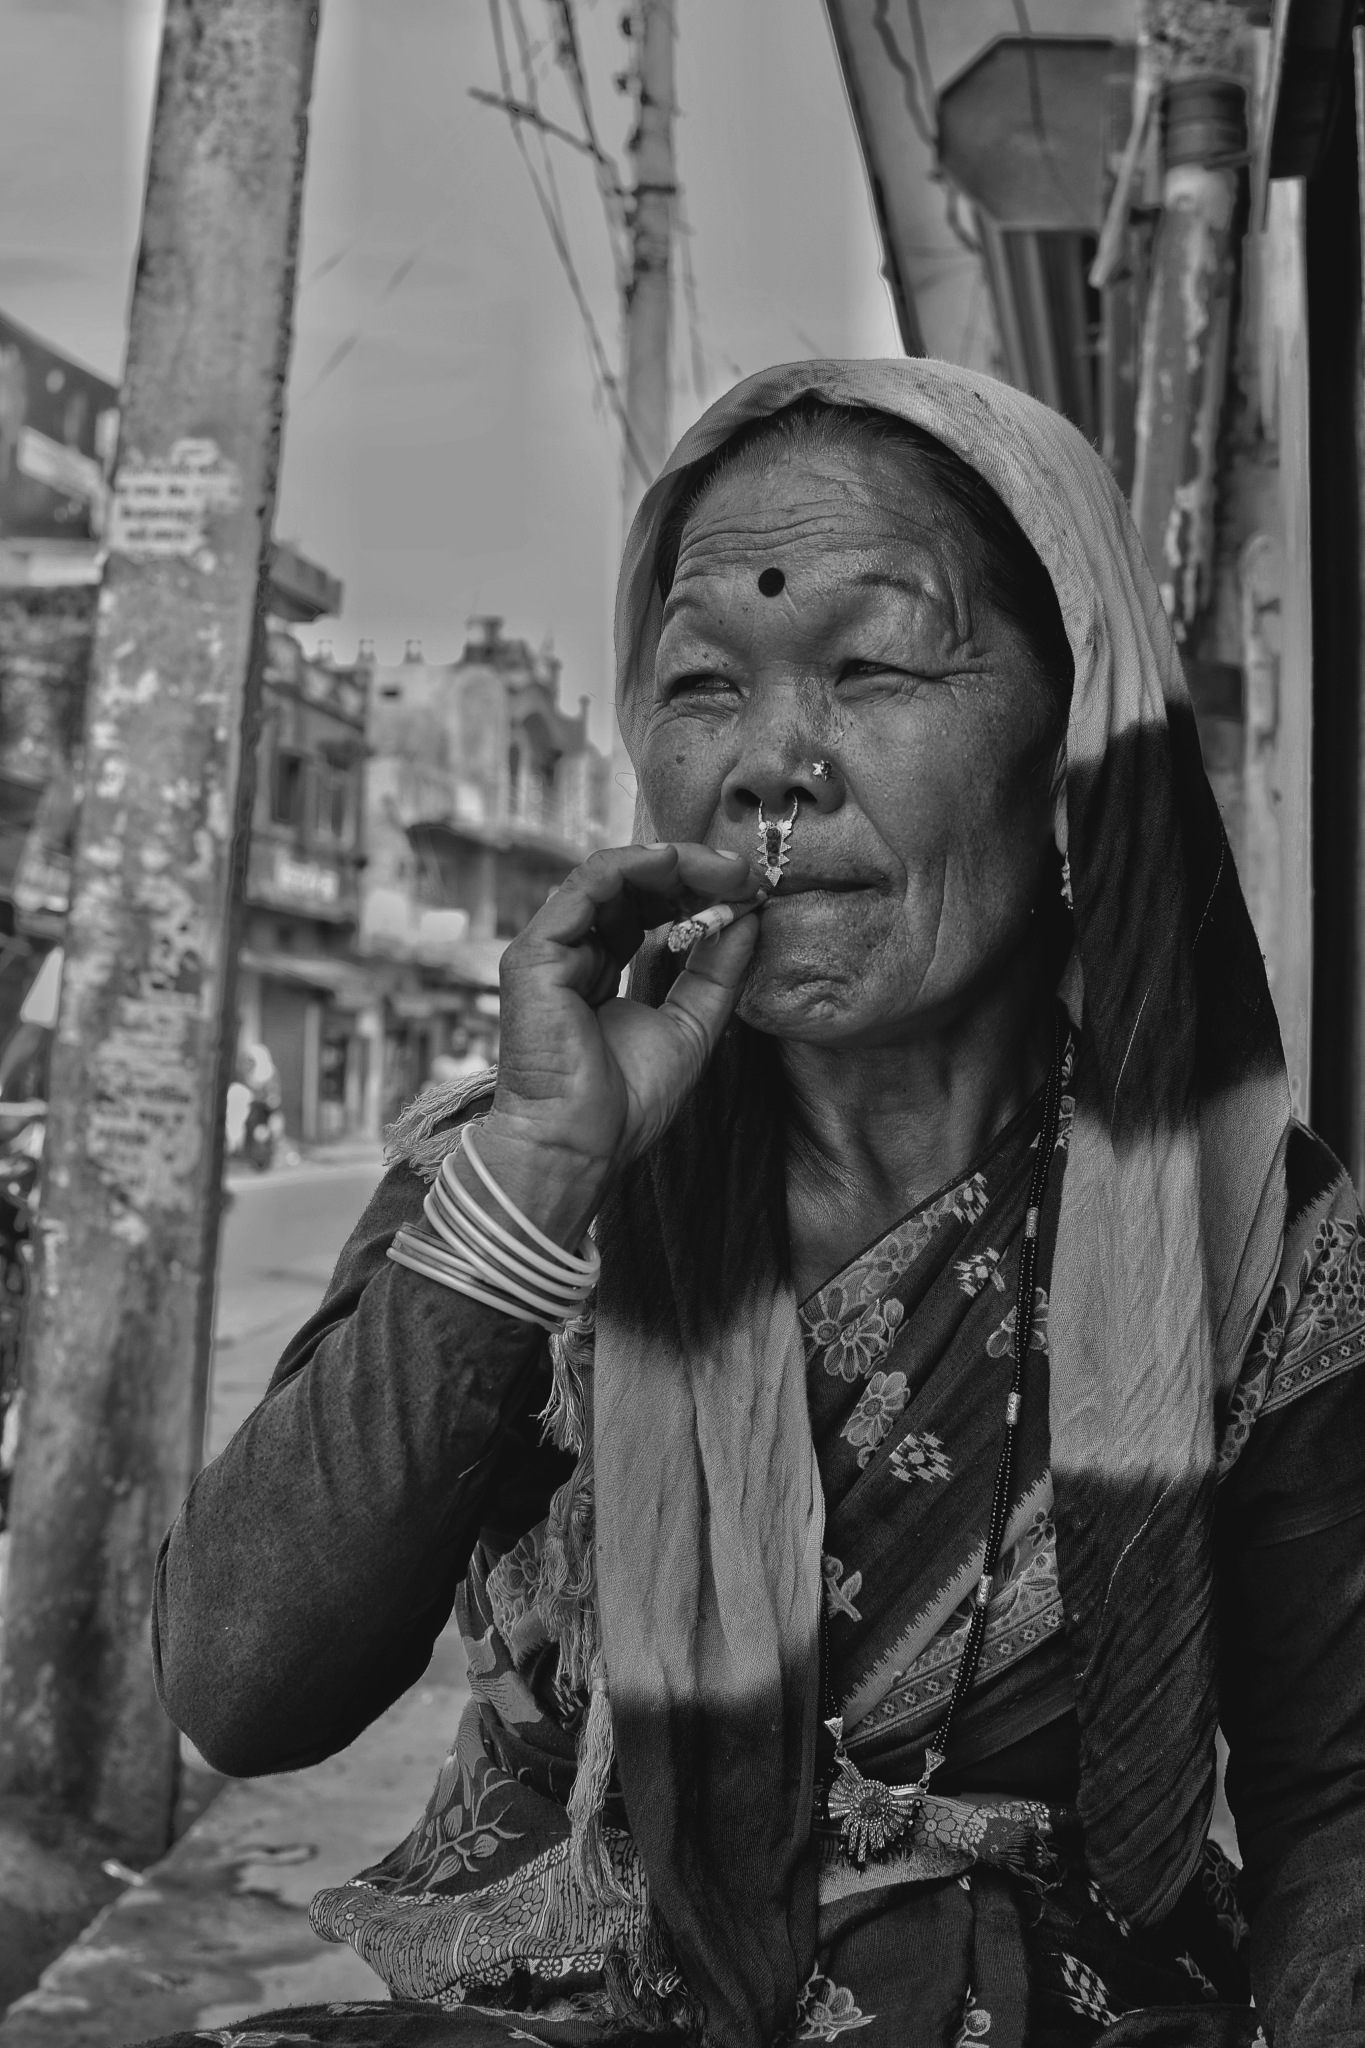 Smoking by Mee Zarger